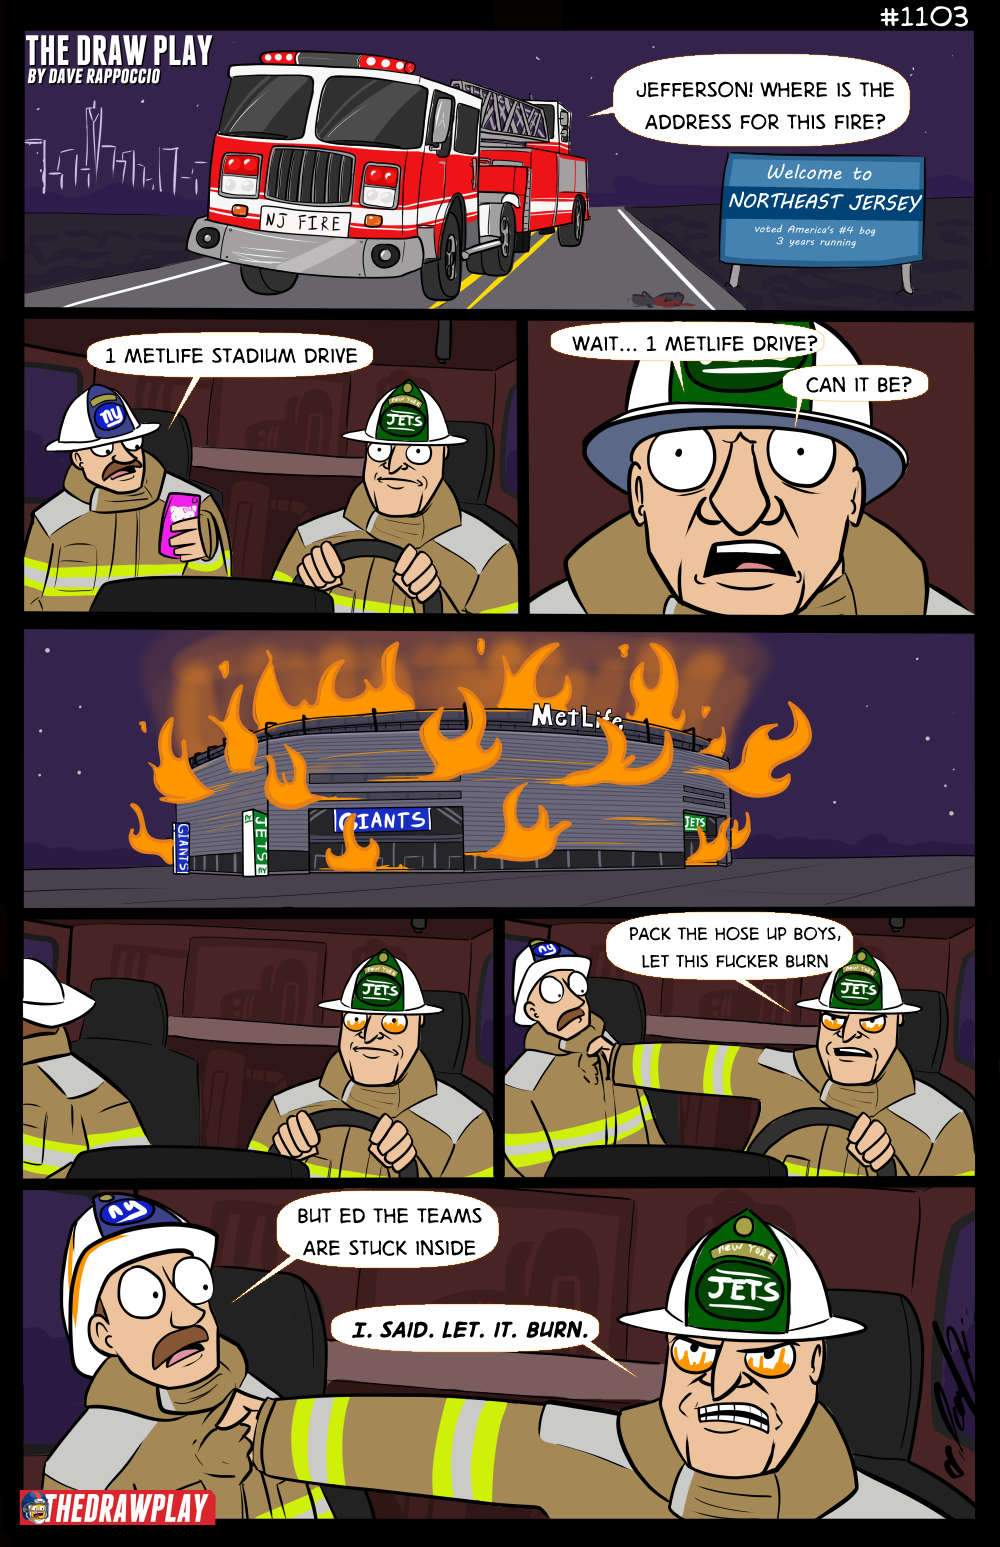 Fireman Ed's been burned there too many times